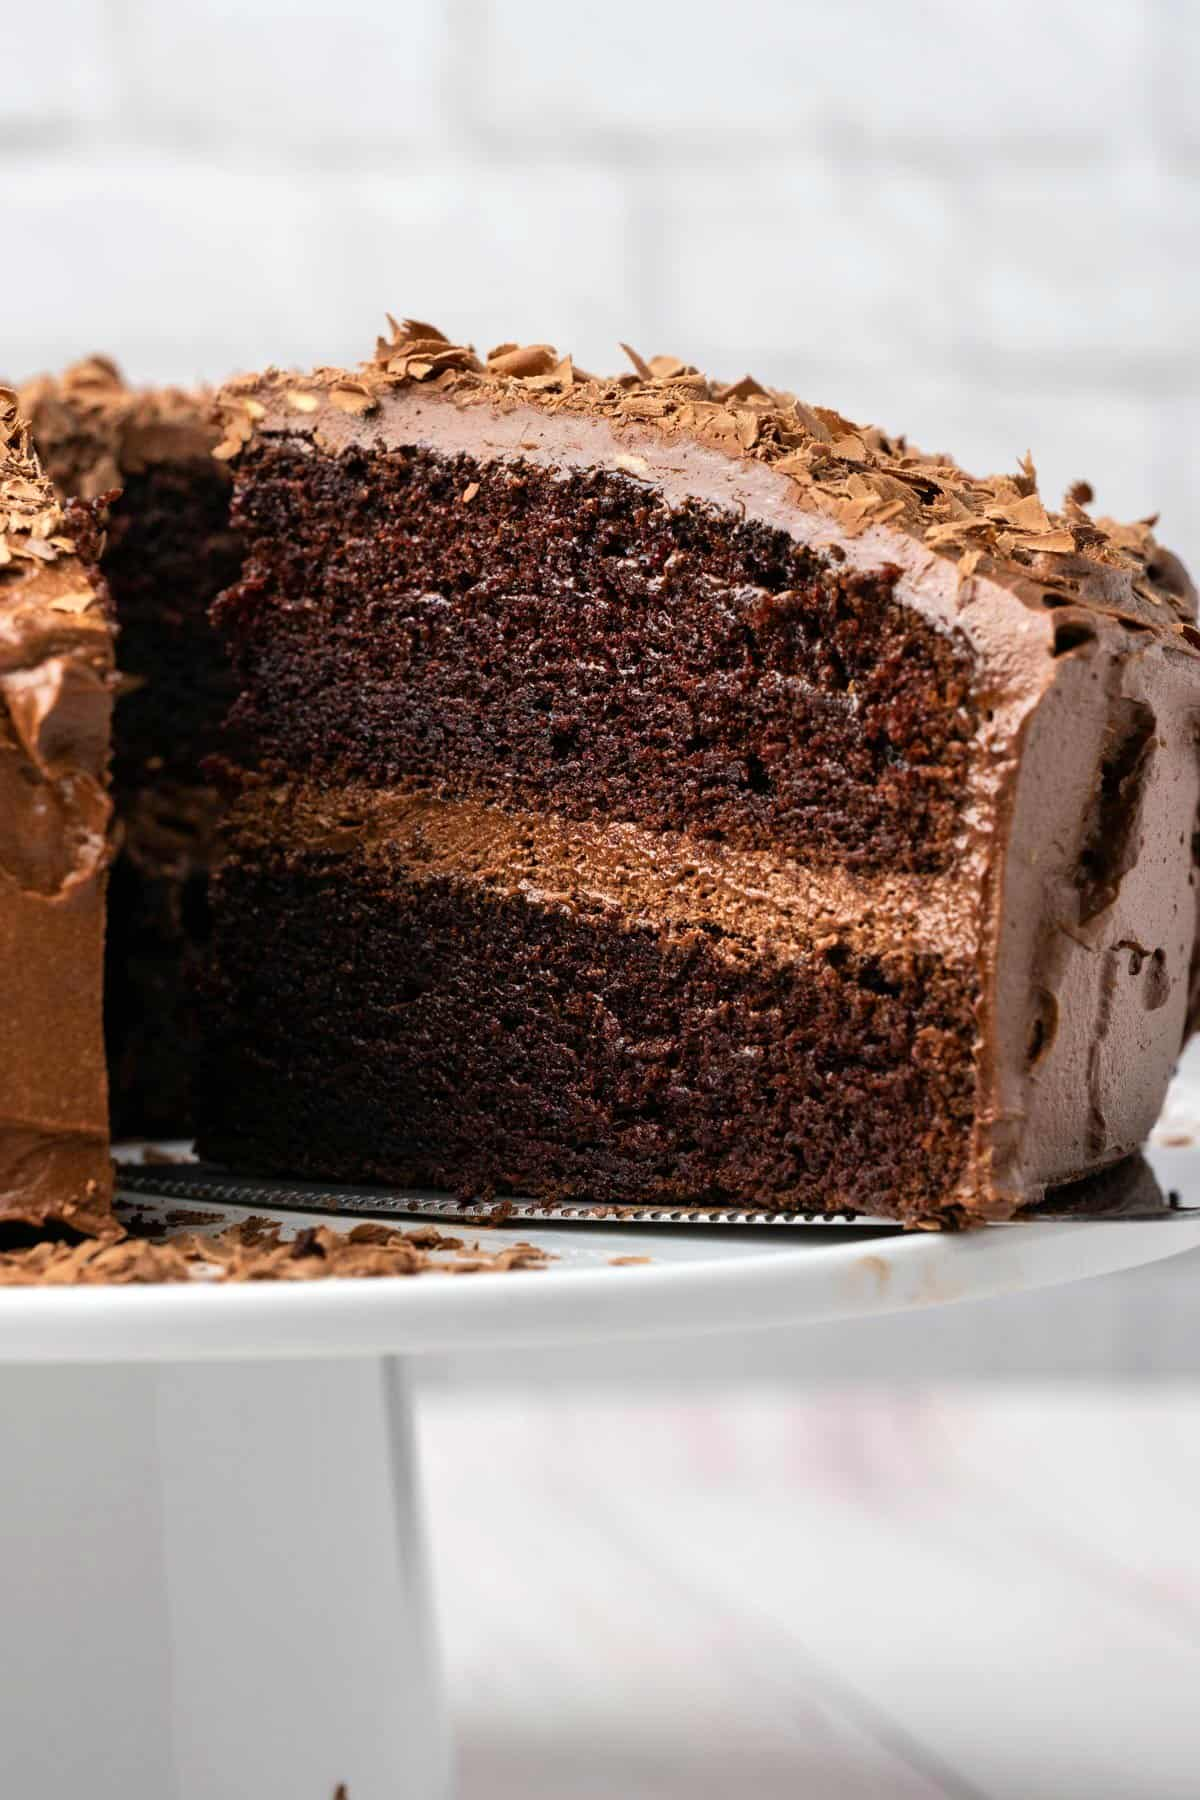 Slice of chocolate cake on a cake lifter.